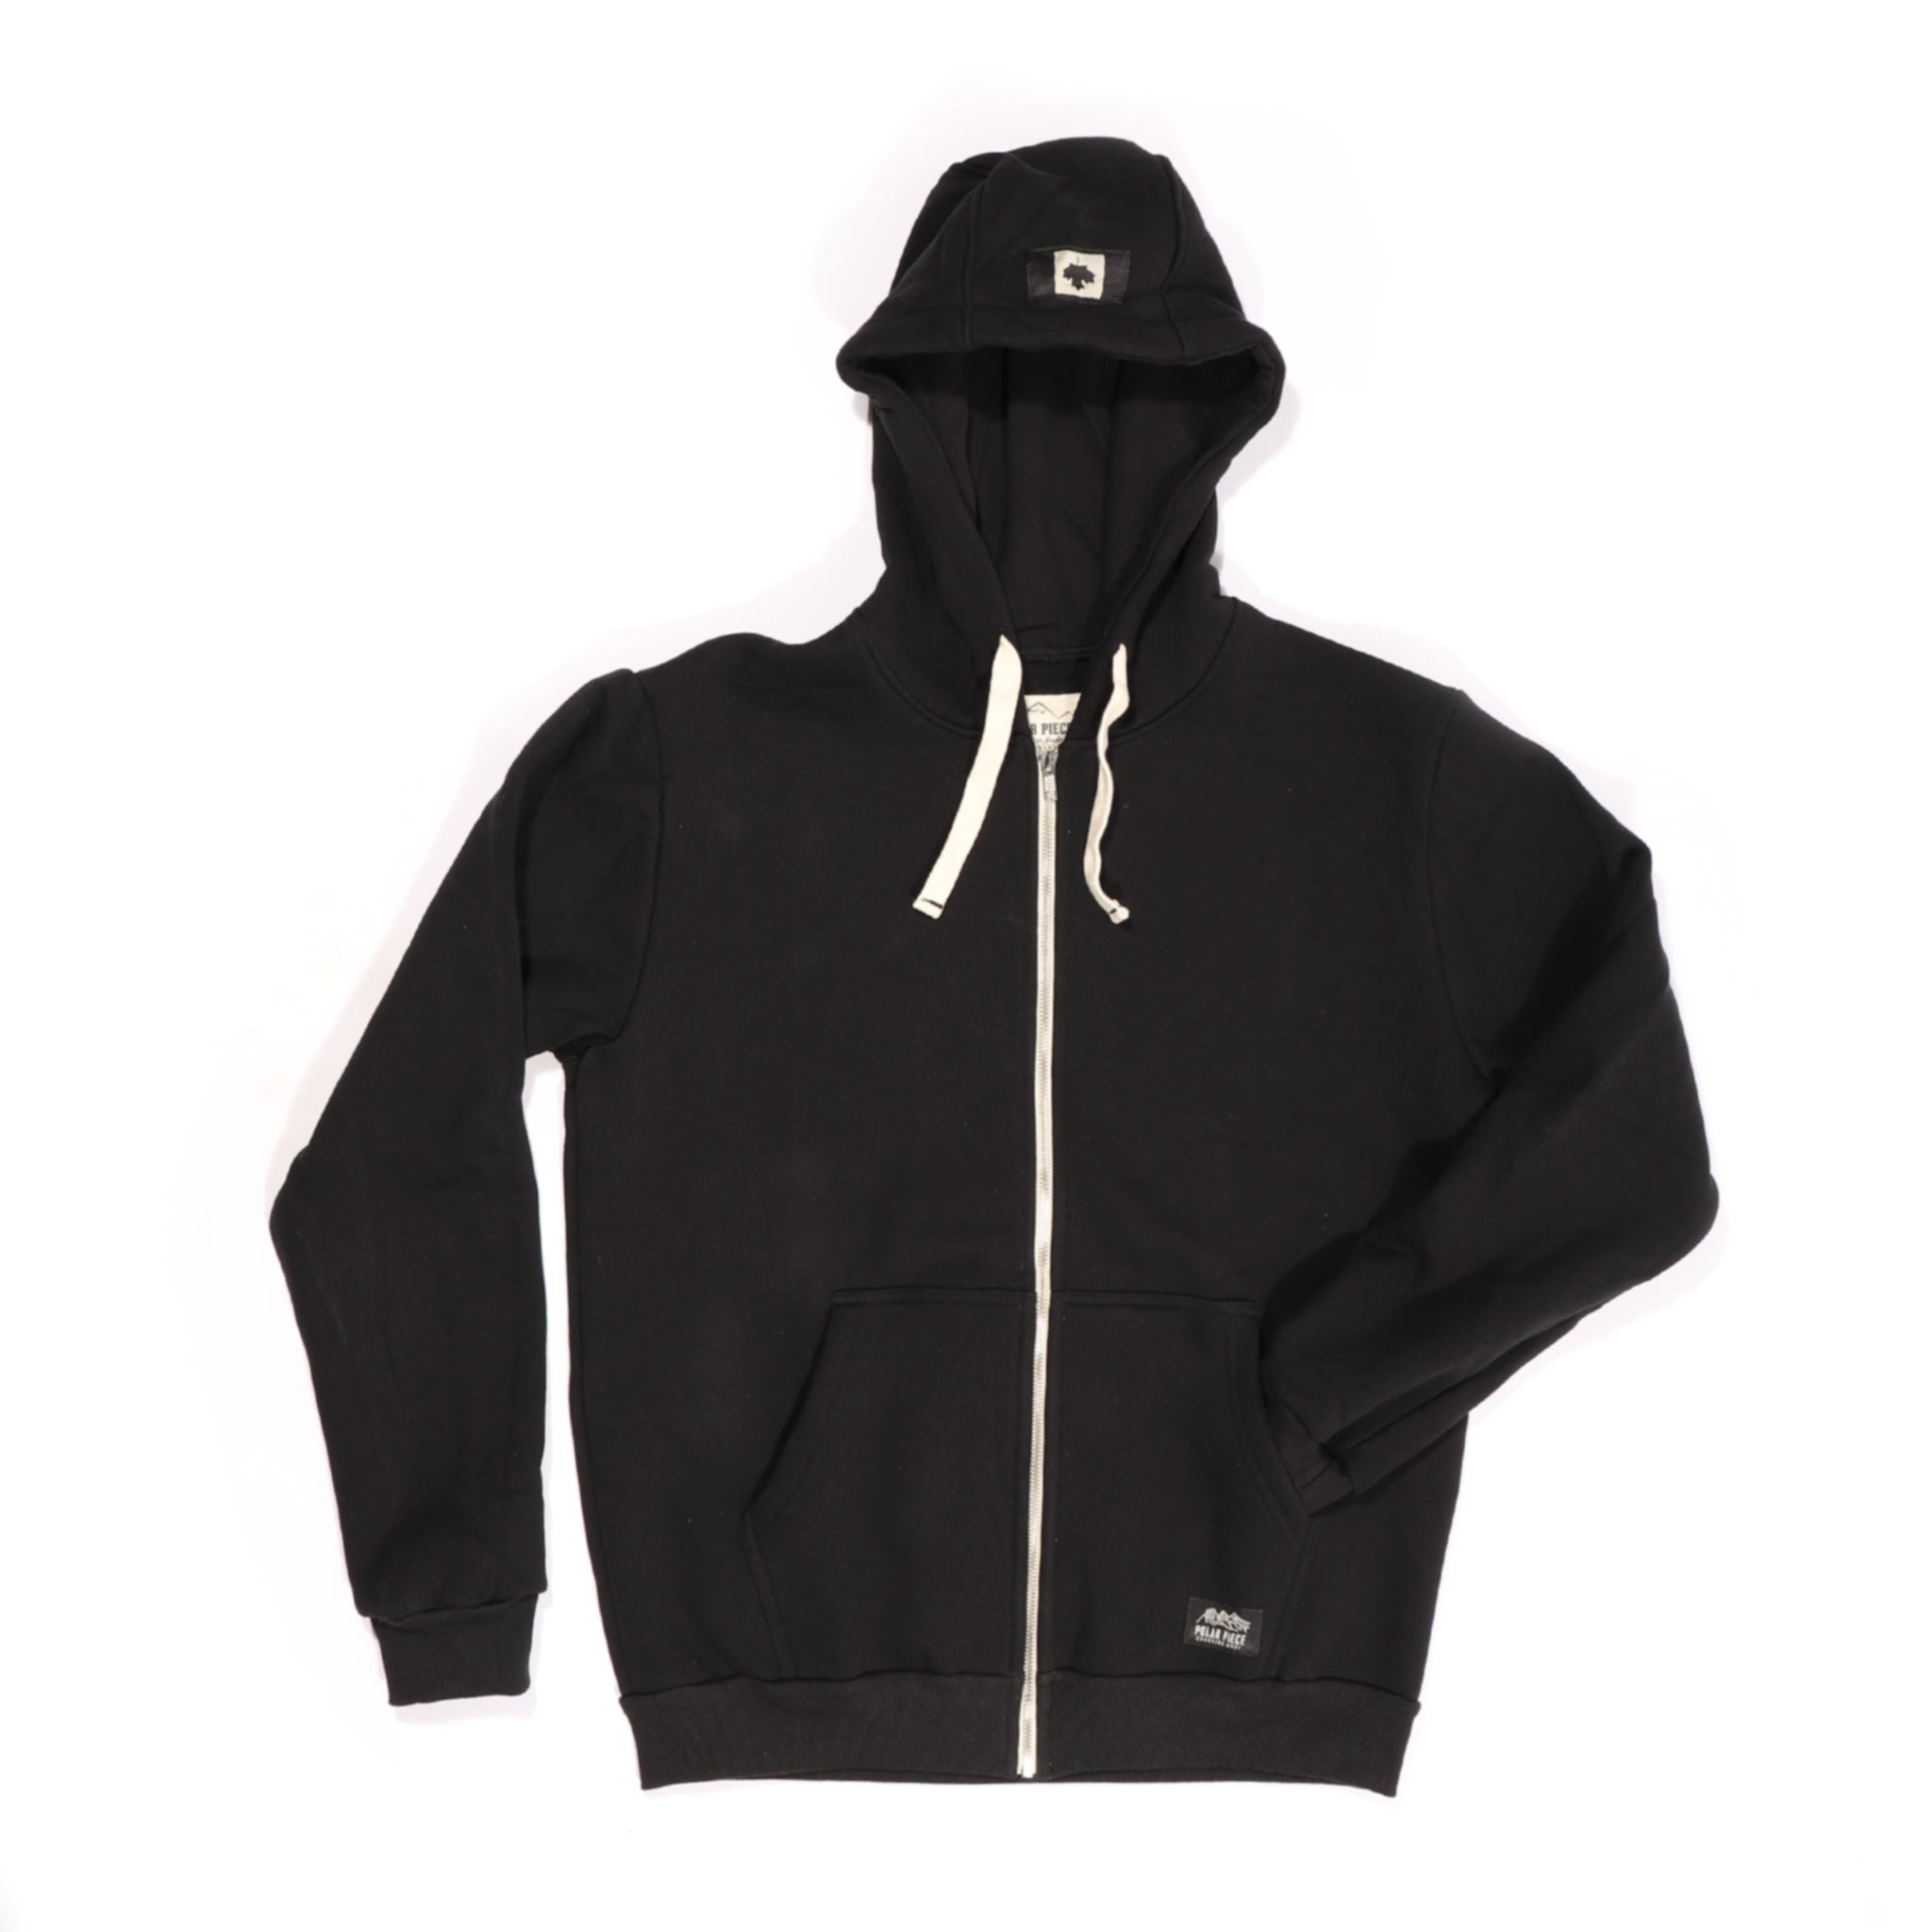 Summit Hoodie in Black - PolarPiece | Simply Canadian